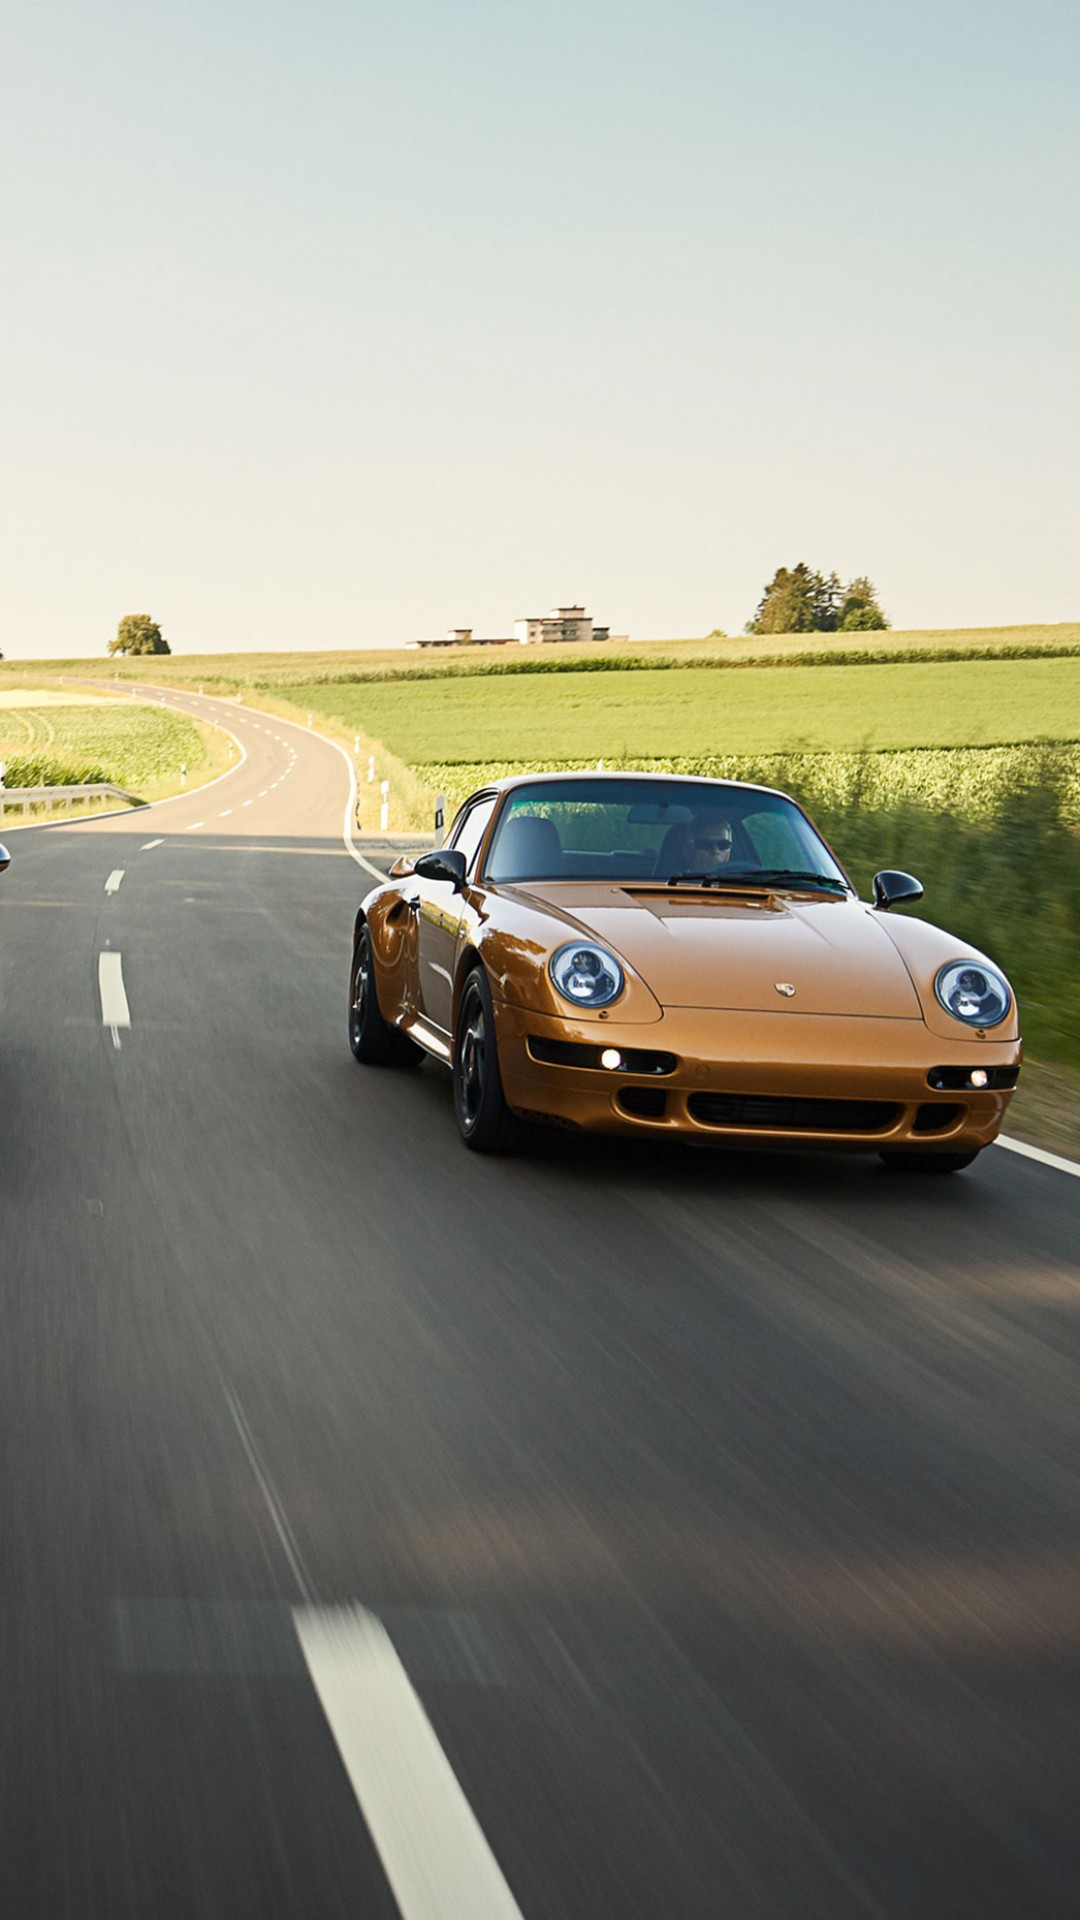 Wallpaper Porsche 993 Turbo S Project Gold 2018 Cars Limited Edition 4k Cars Bikes 20220